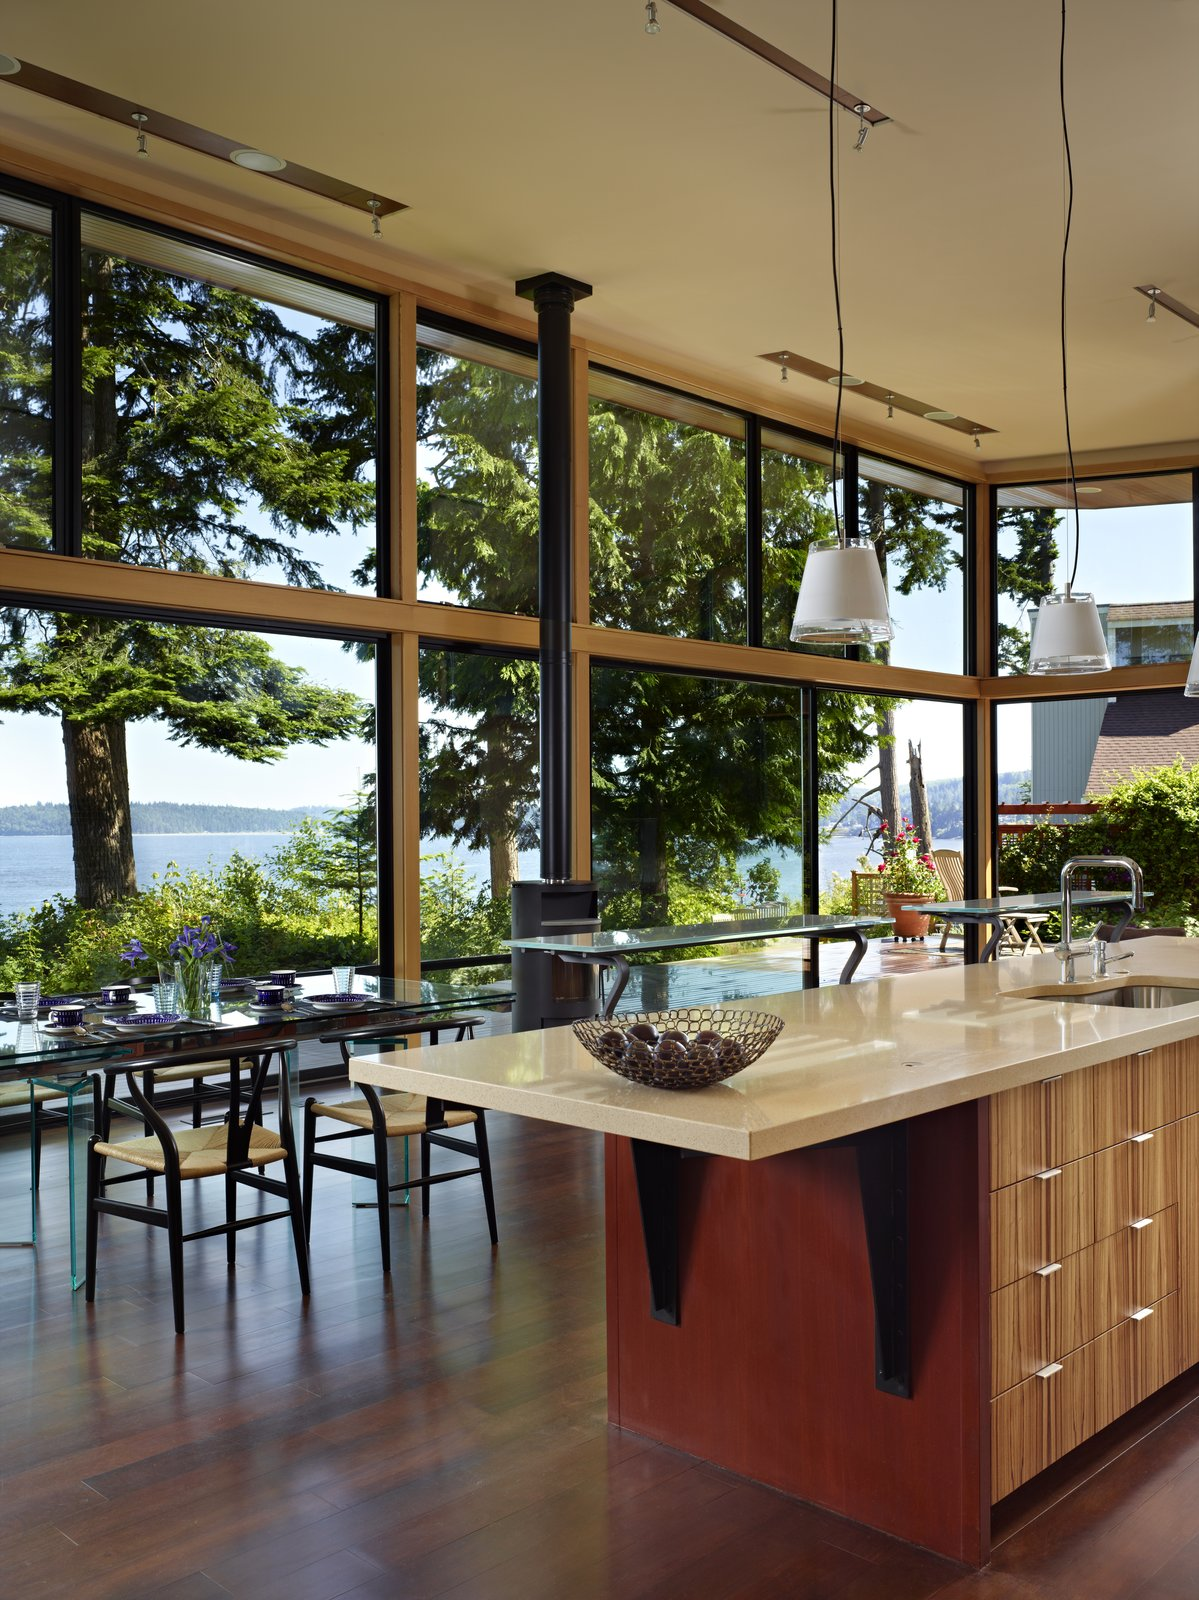 Kitchen, Porcelain Tile Backsplashe, Pendant Lighting, Engineered Quartz Counter, Ceiling Lighting, Wall Oven, Cooktops, Refrigerator, Wood Cabinet, Dark Hardwood Floor, and Drop In Sink Interior view of kitchen and dining spaces  Port Ludlow House by FINNE Architects